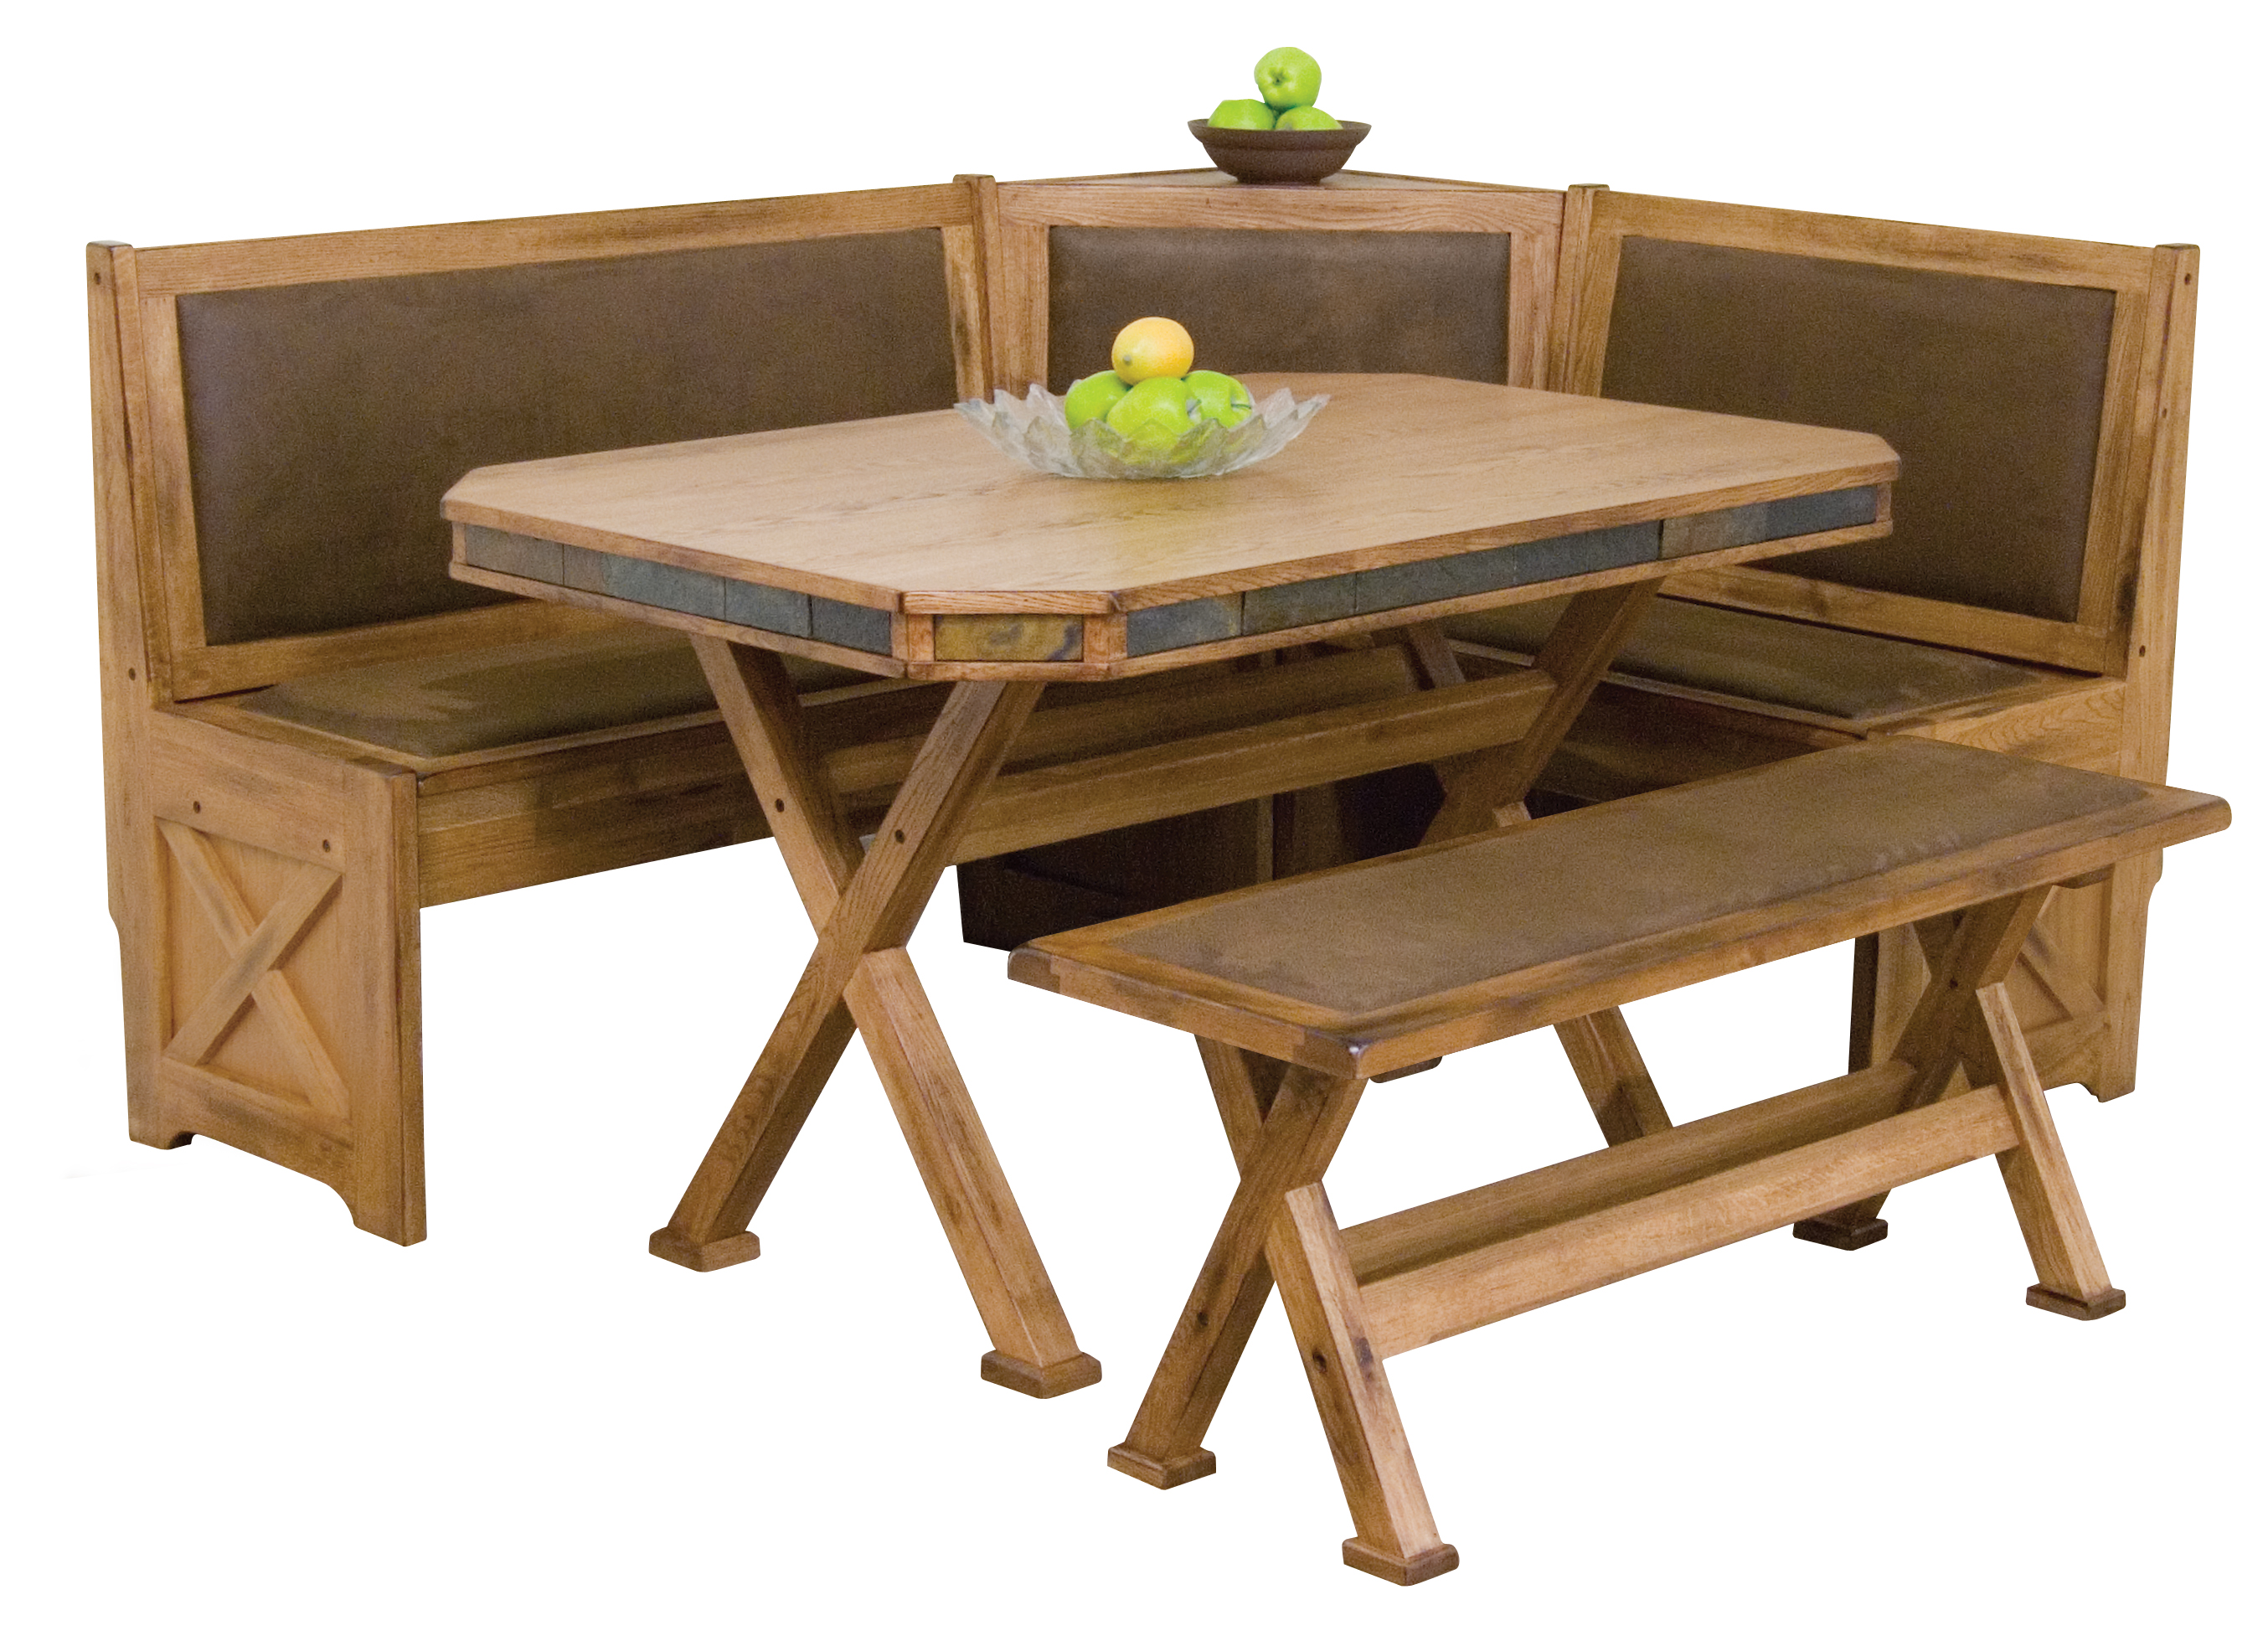 Furniture dining room furniture nook rustic breakfast nook Corner dining table